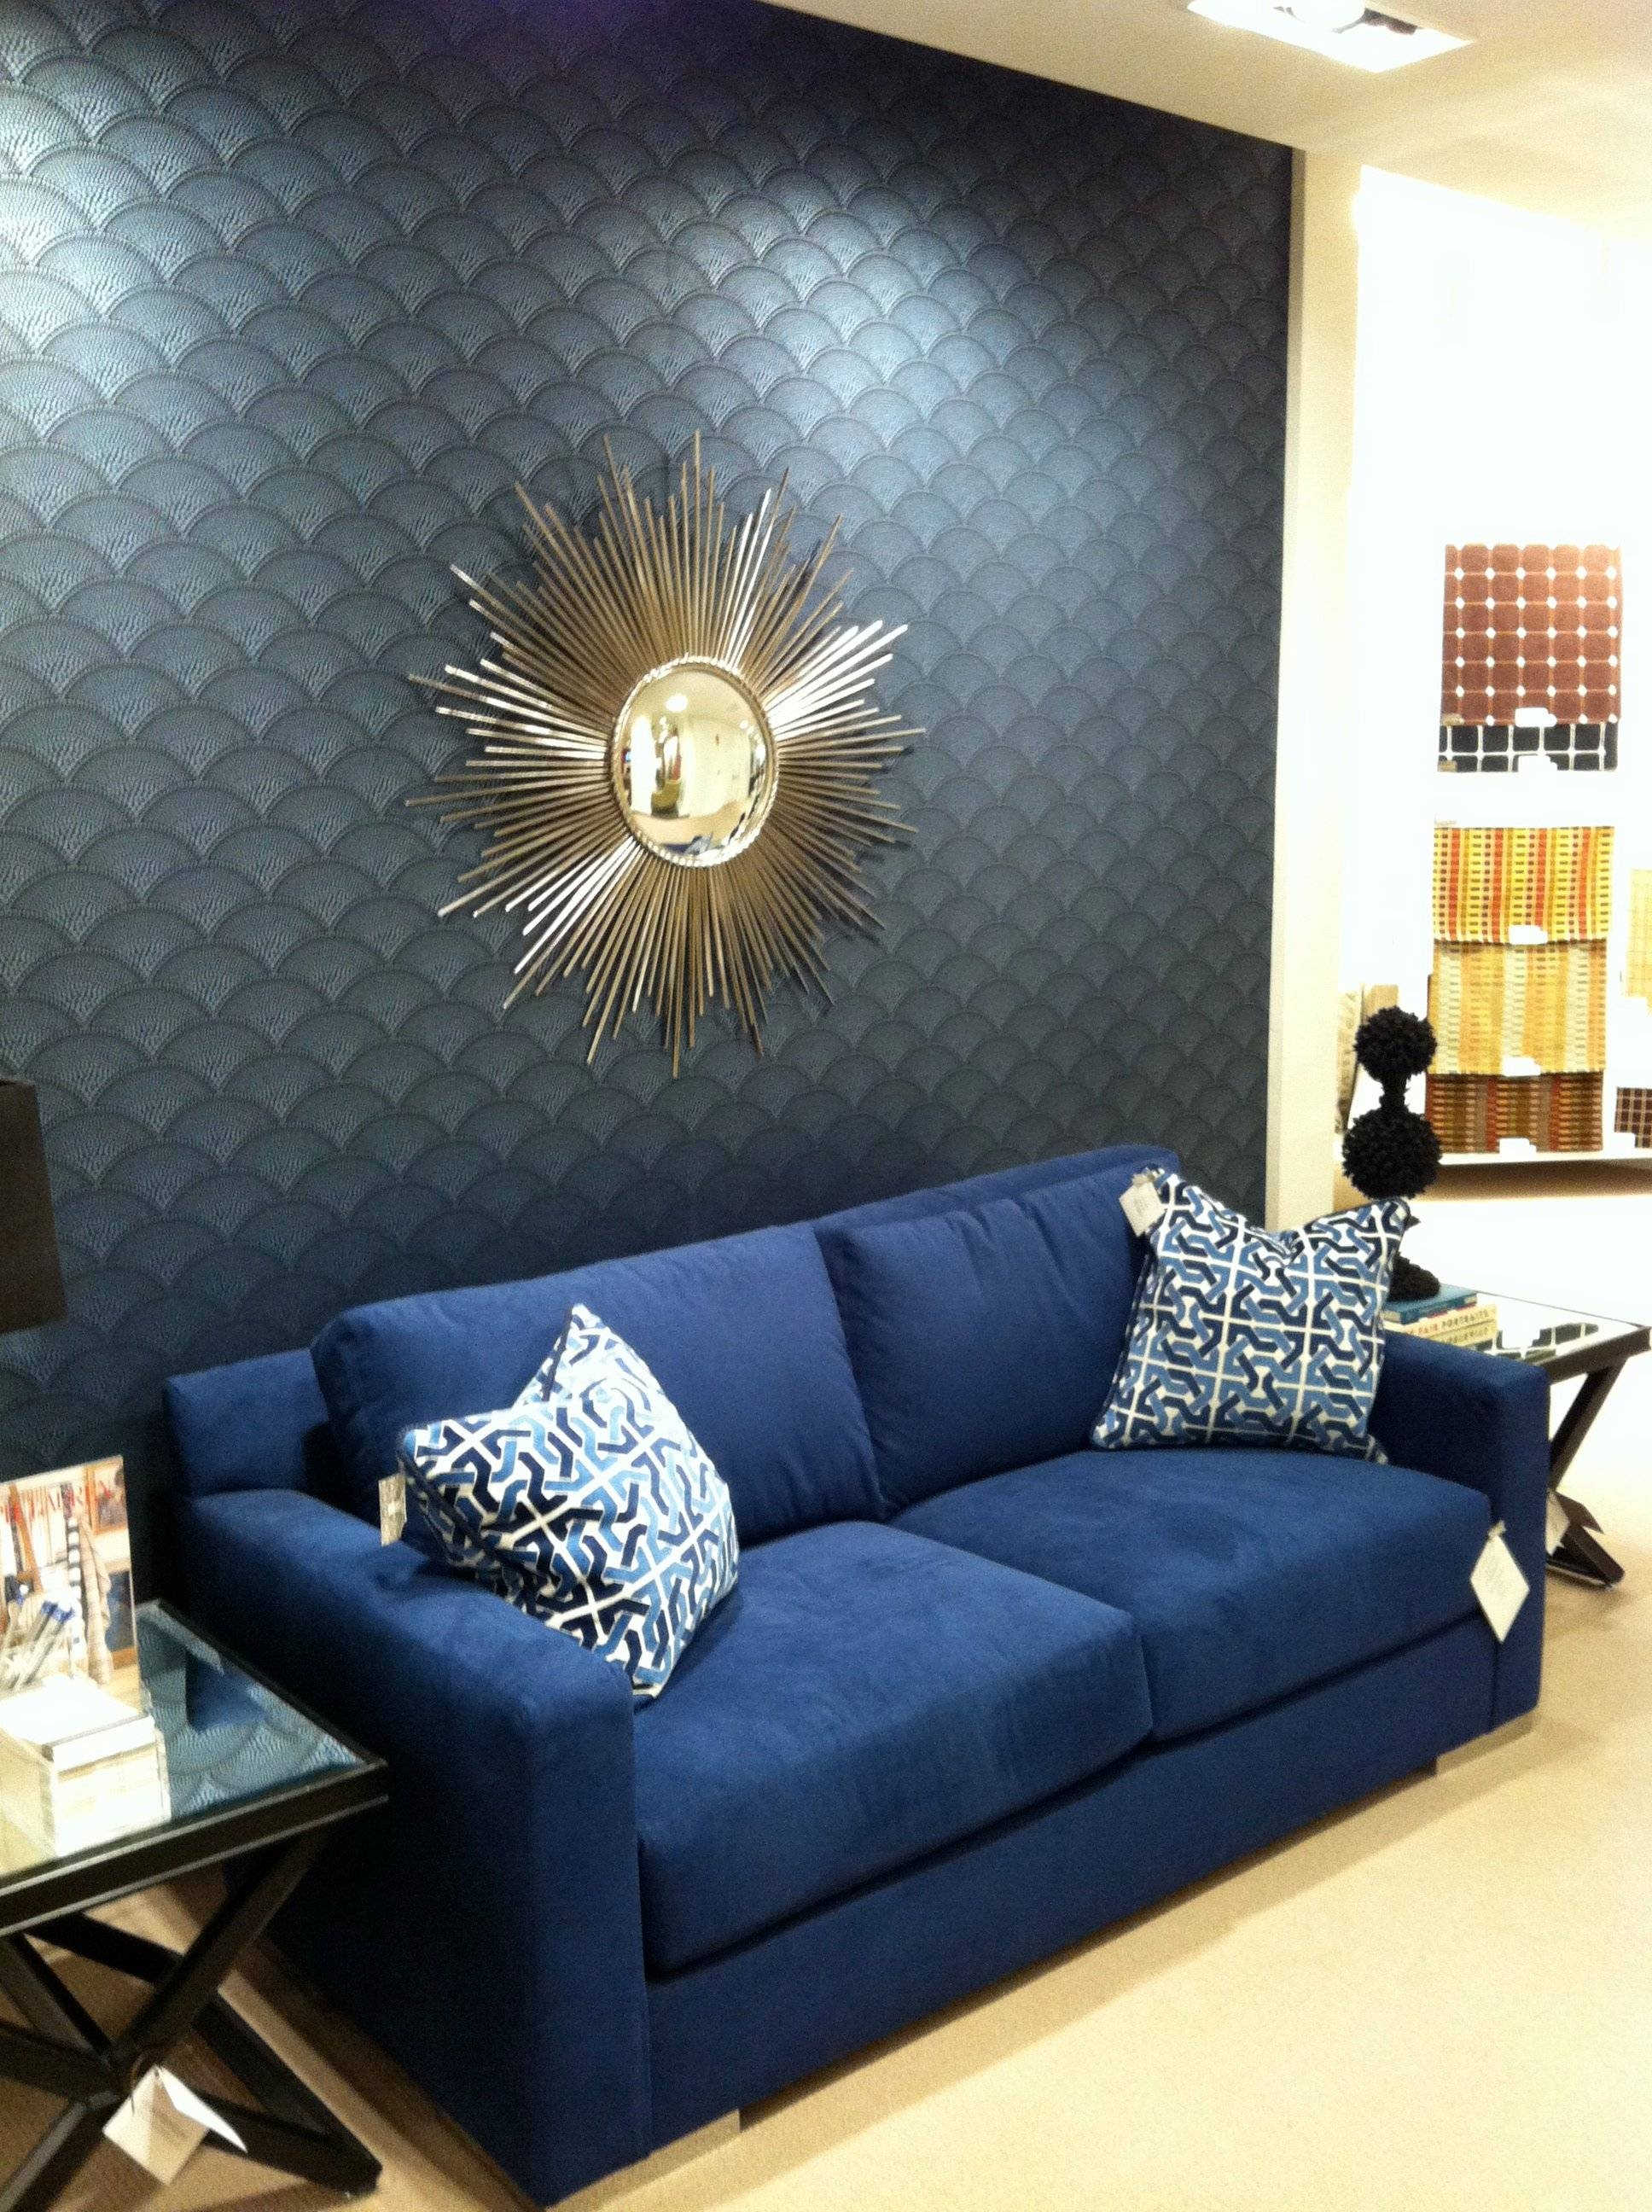 Sofas Center : Impressive Dark Blue Sofa Pictures Ideas Pinterest regarding Dark Blue Sofas (Image 26 of 30)